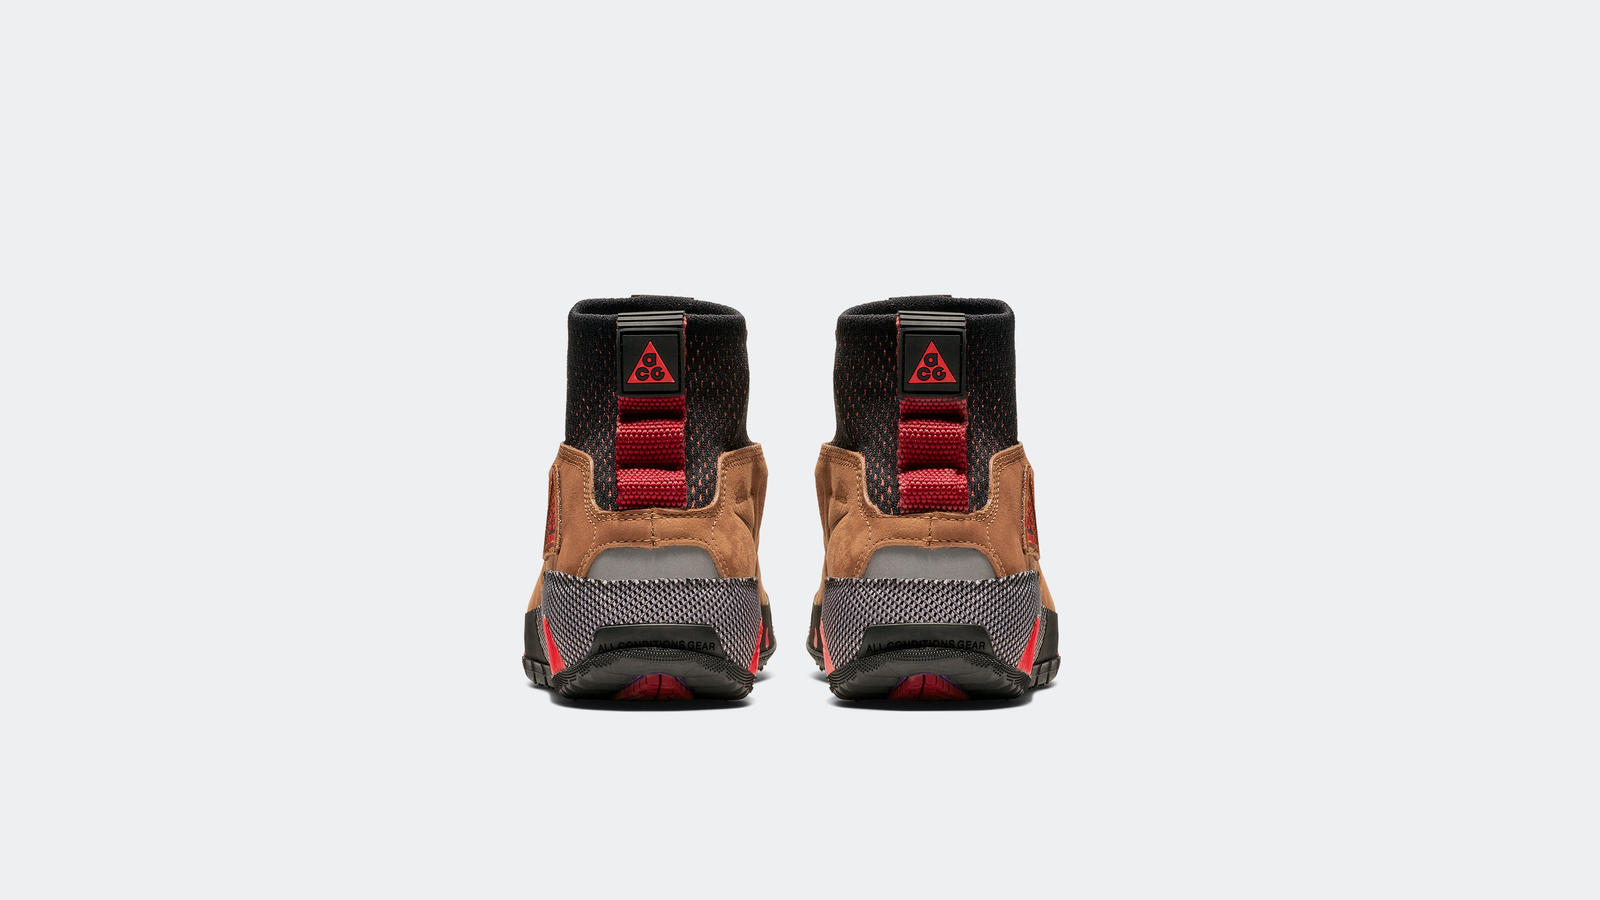 Acg rr brown 5 hd 1600